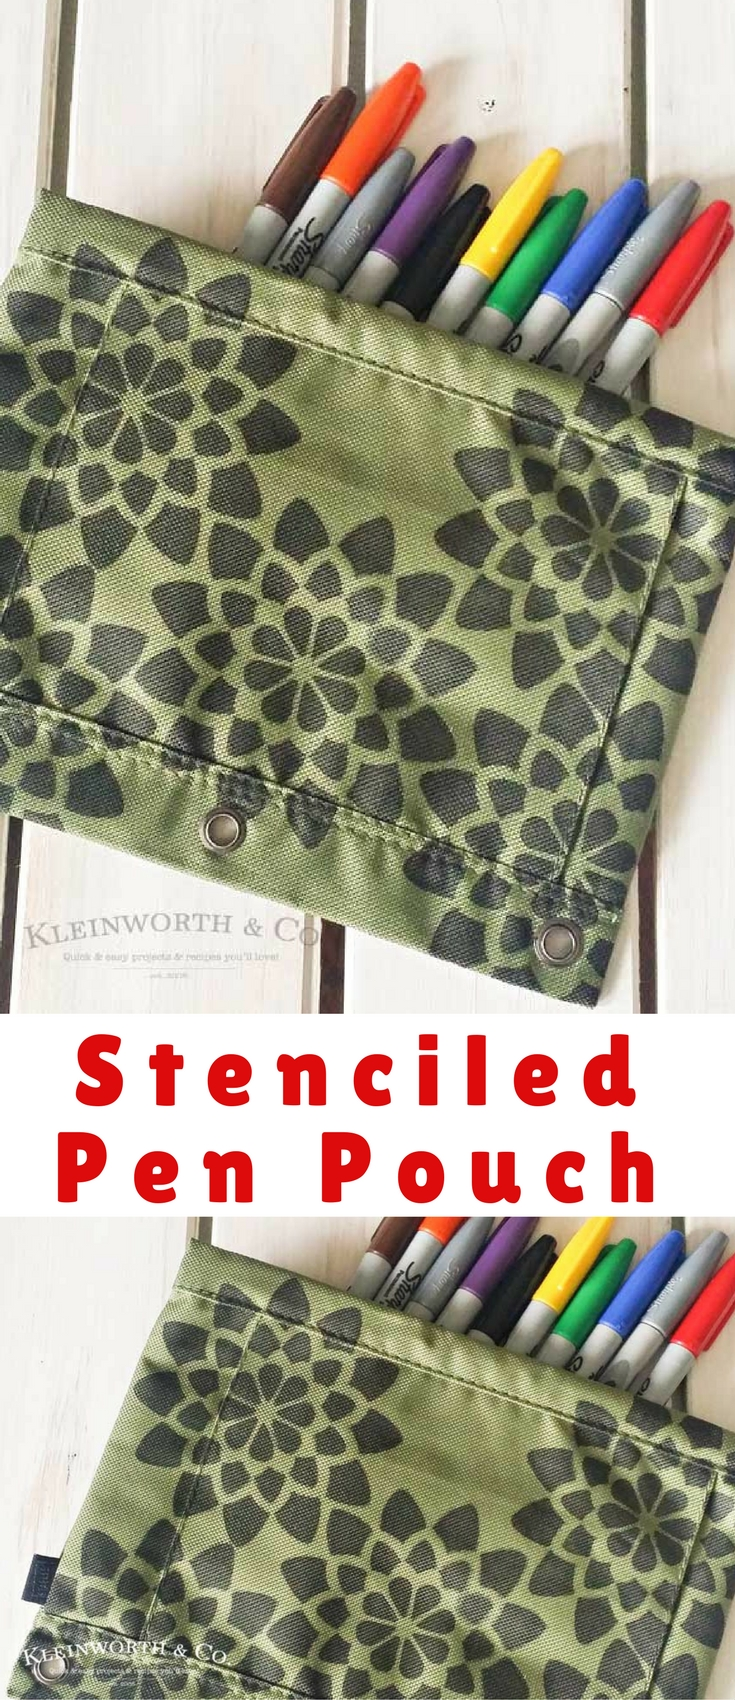 A simple Stenciled Pen Pouch makes all the difference in back to school excitement. With just a plain pen pouch & some Sharpie markers you can make one too.